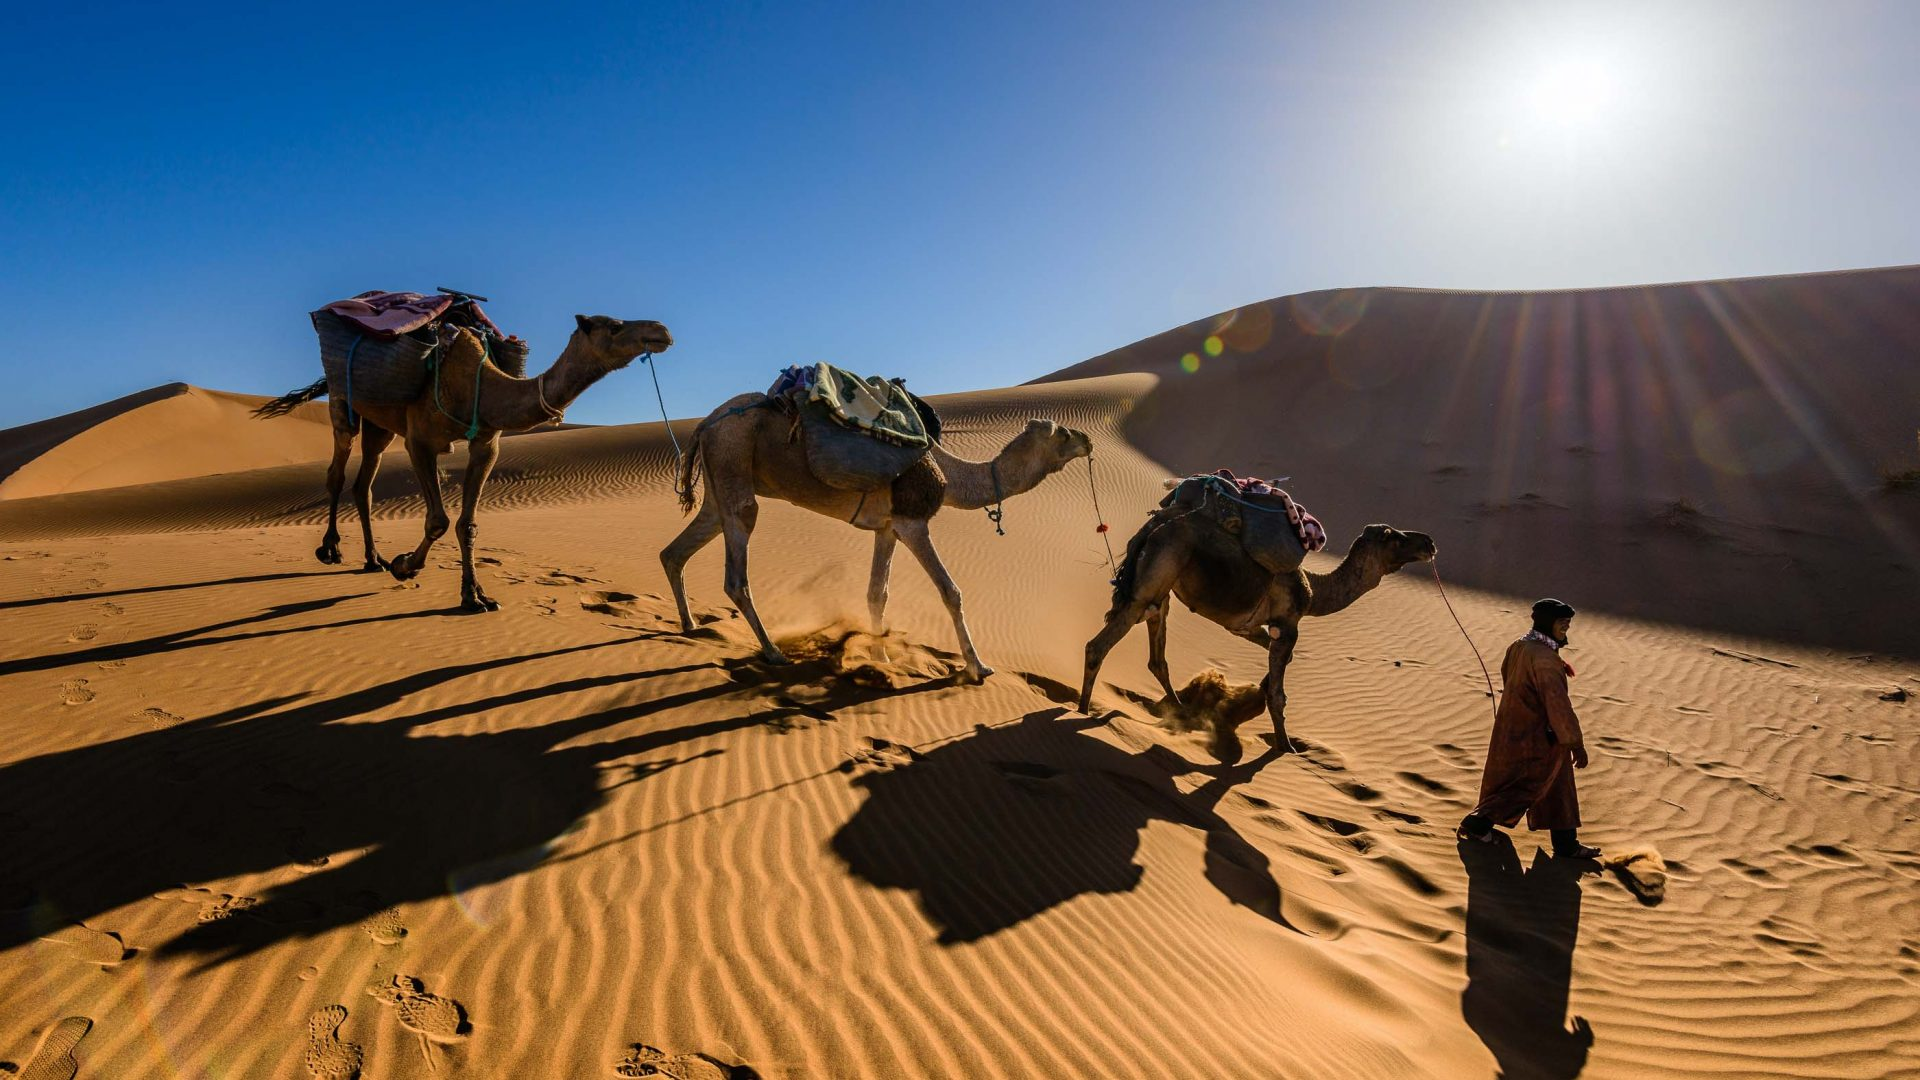 Camels cross the sand of the Sahara.